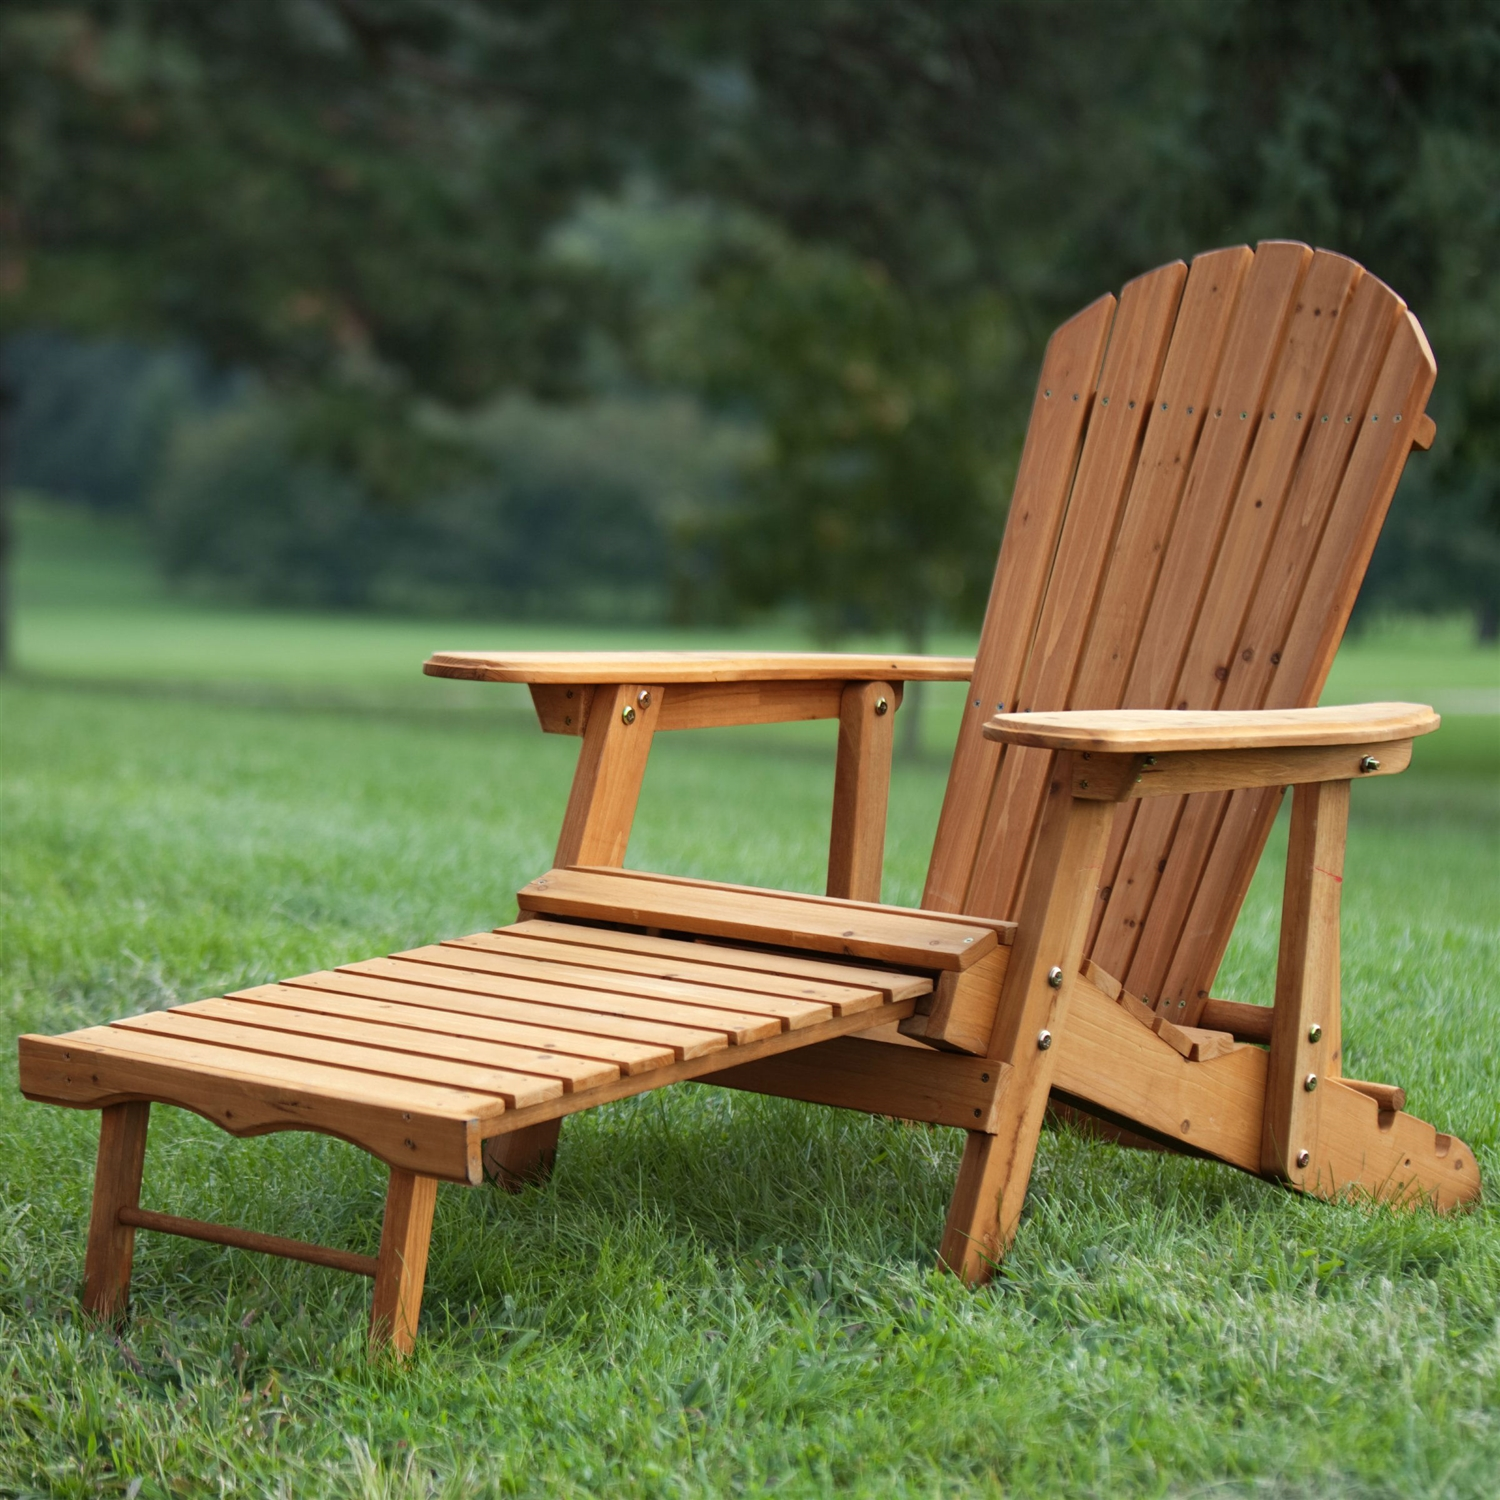 Outdoor Adirondack Chair Recliner with Slide Out Ottoman in Kiln